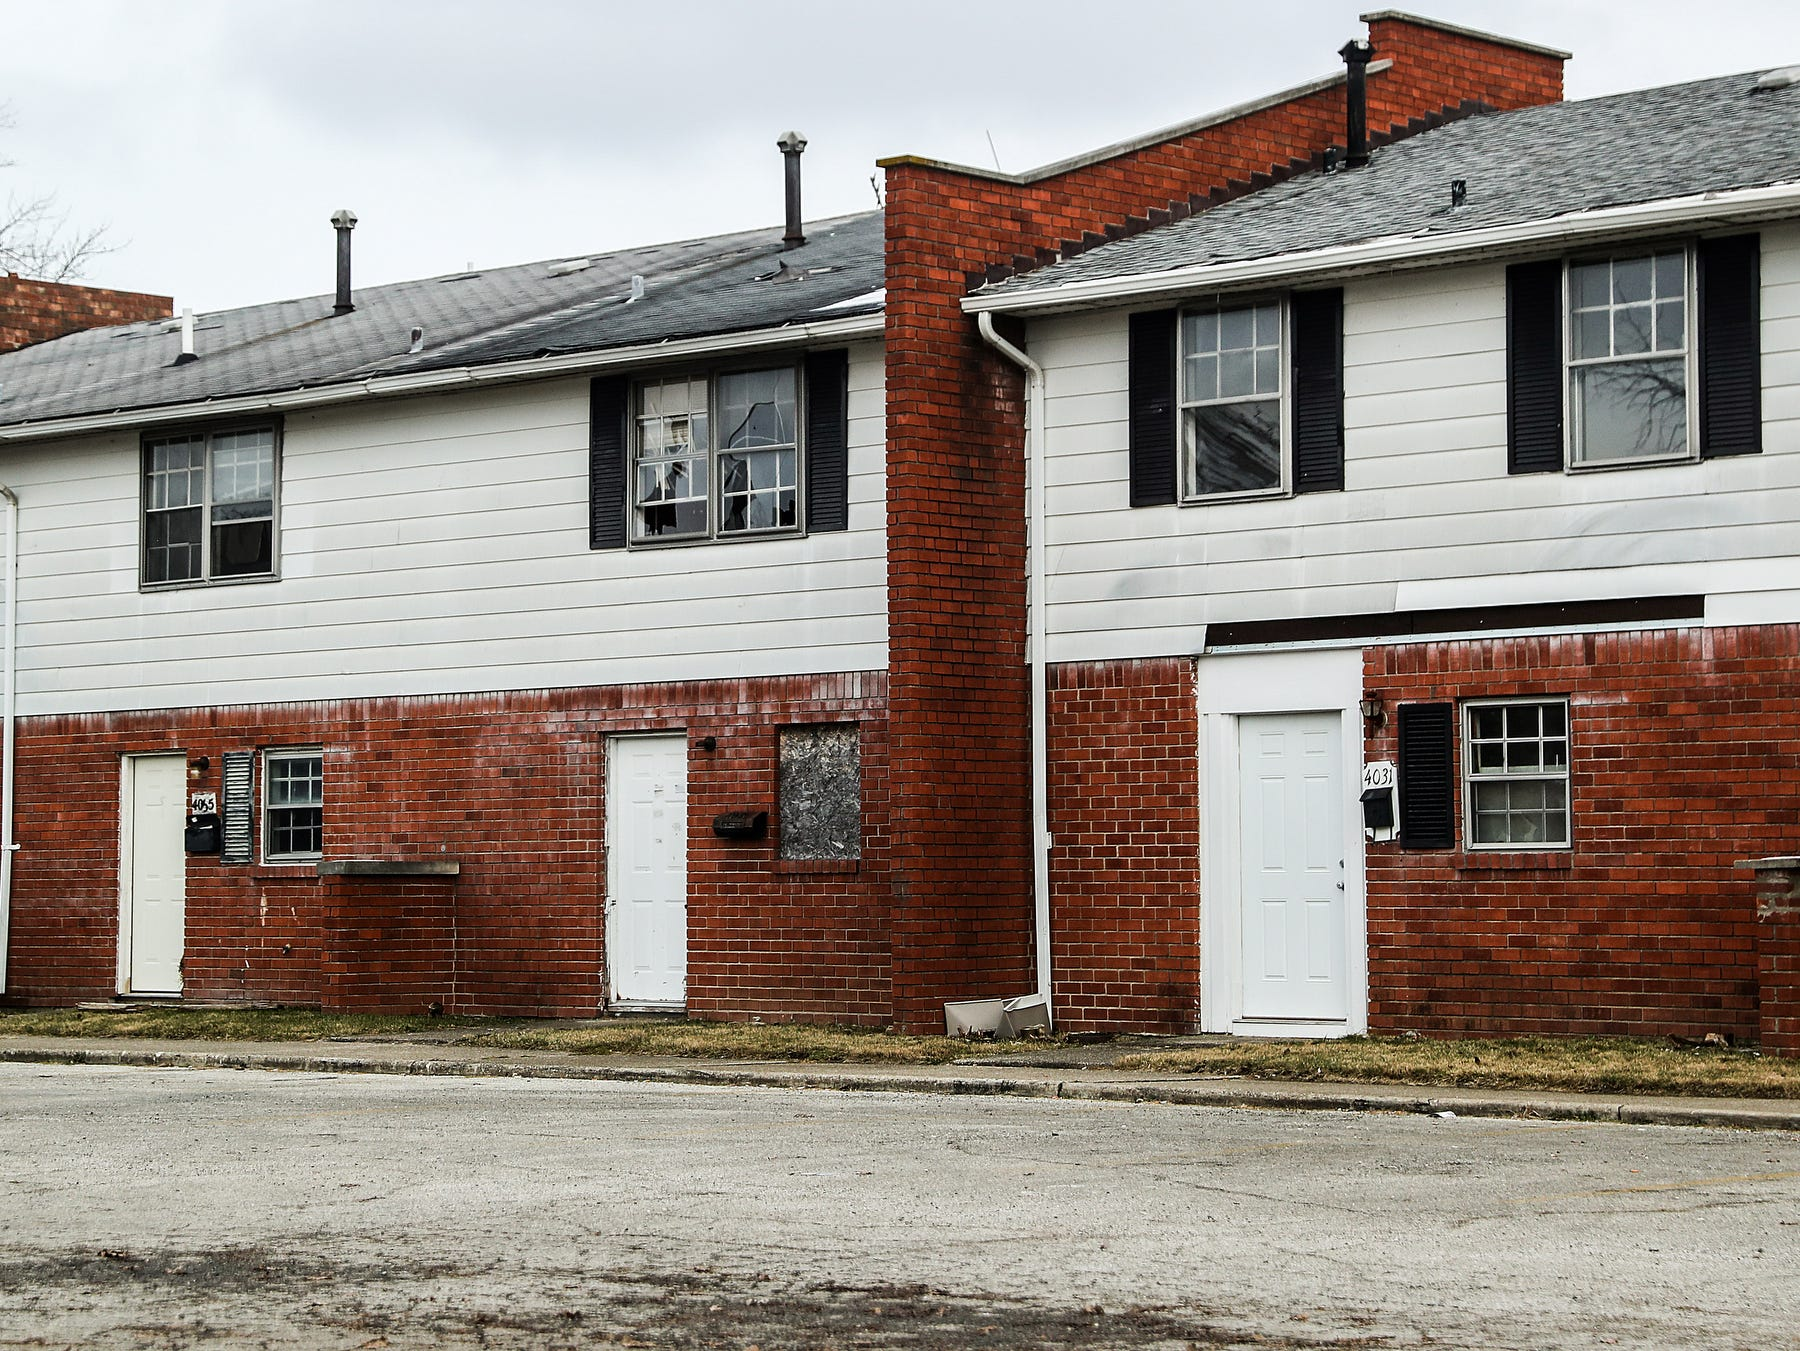 At Towne and Terrace, a housing complex built in the 1960s off of 42nd Street and Post Road, half of the deteriorating 222 units are empty or abandoned, seen Saturday, Dec. 8, 2018. As Fort Benjamin Harrison military base closed in 1991 and working-class residents left the area, housing providers lowered prices to attract people to the north-east side. Over time, the complex has become concentrated with systematic problems like drug-dealing and violence. Since 2013, seven criminal homicide victims have been found at the complex.